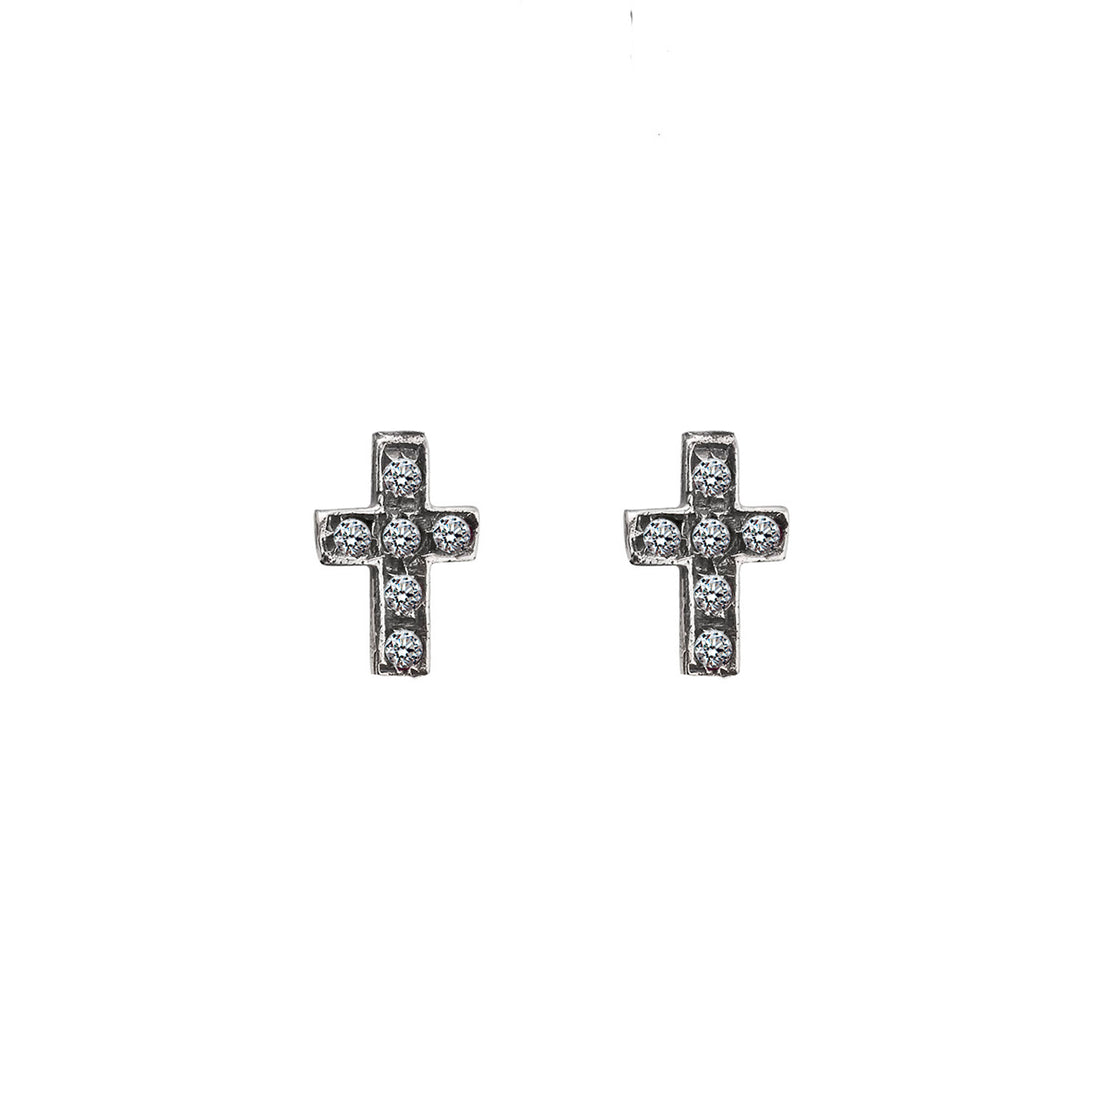 Baby Encrusted Cross Earrings